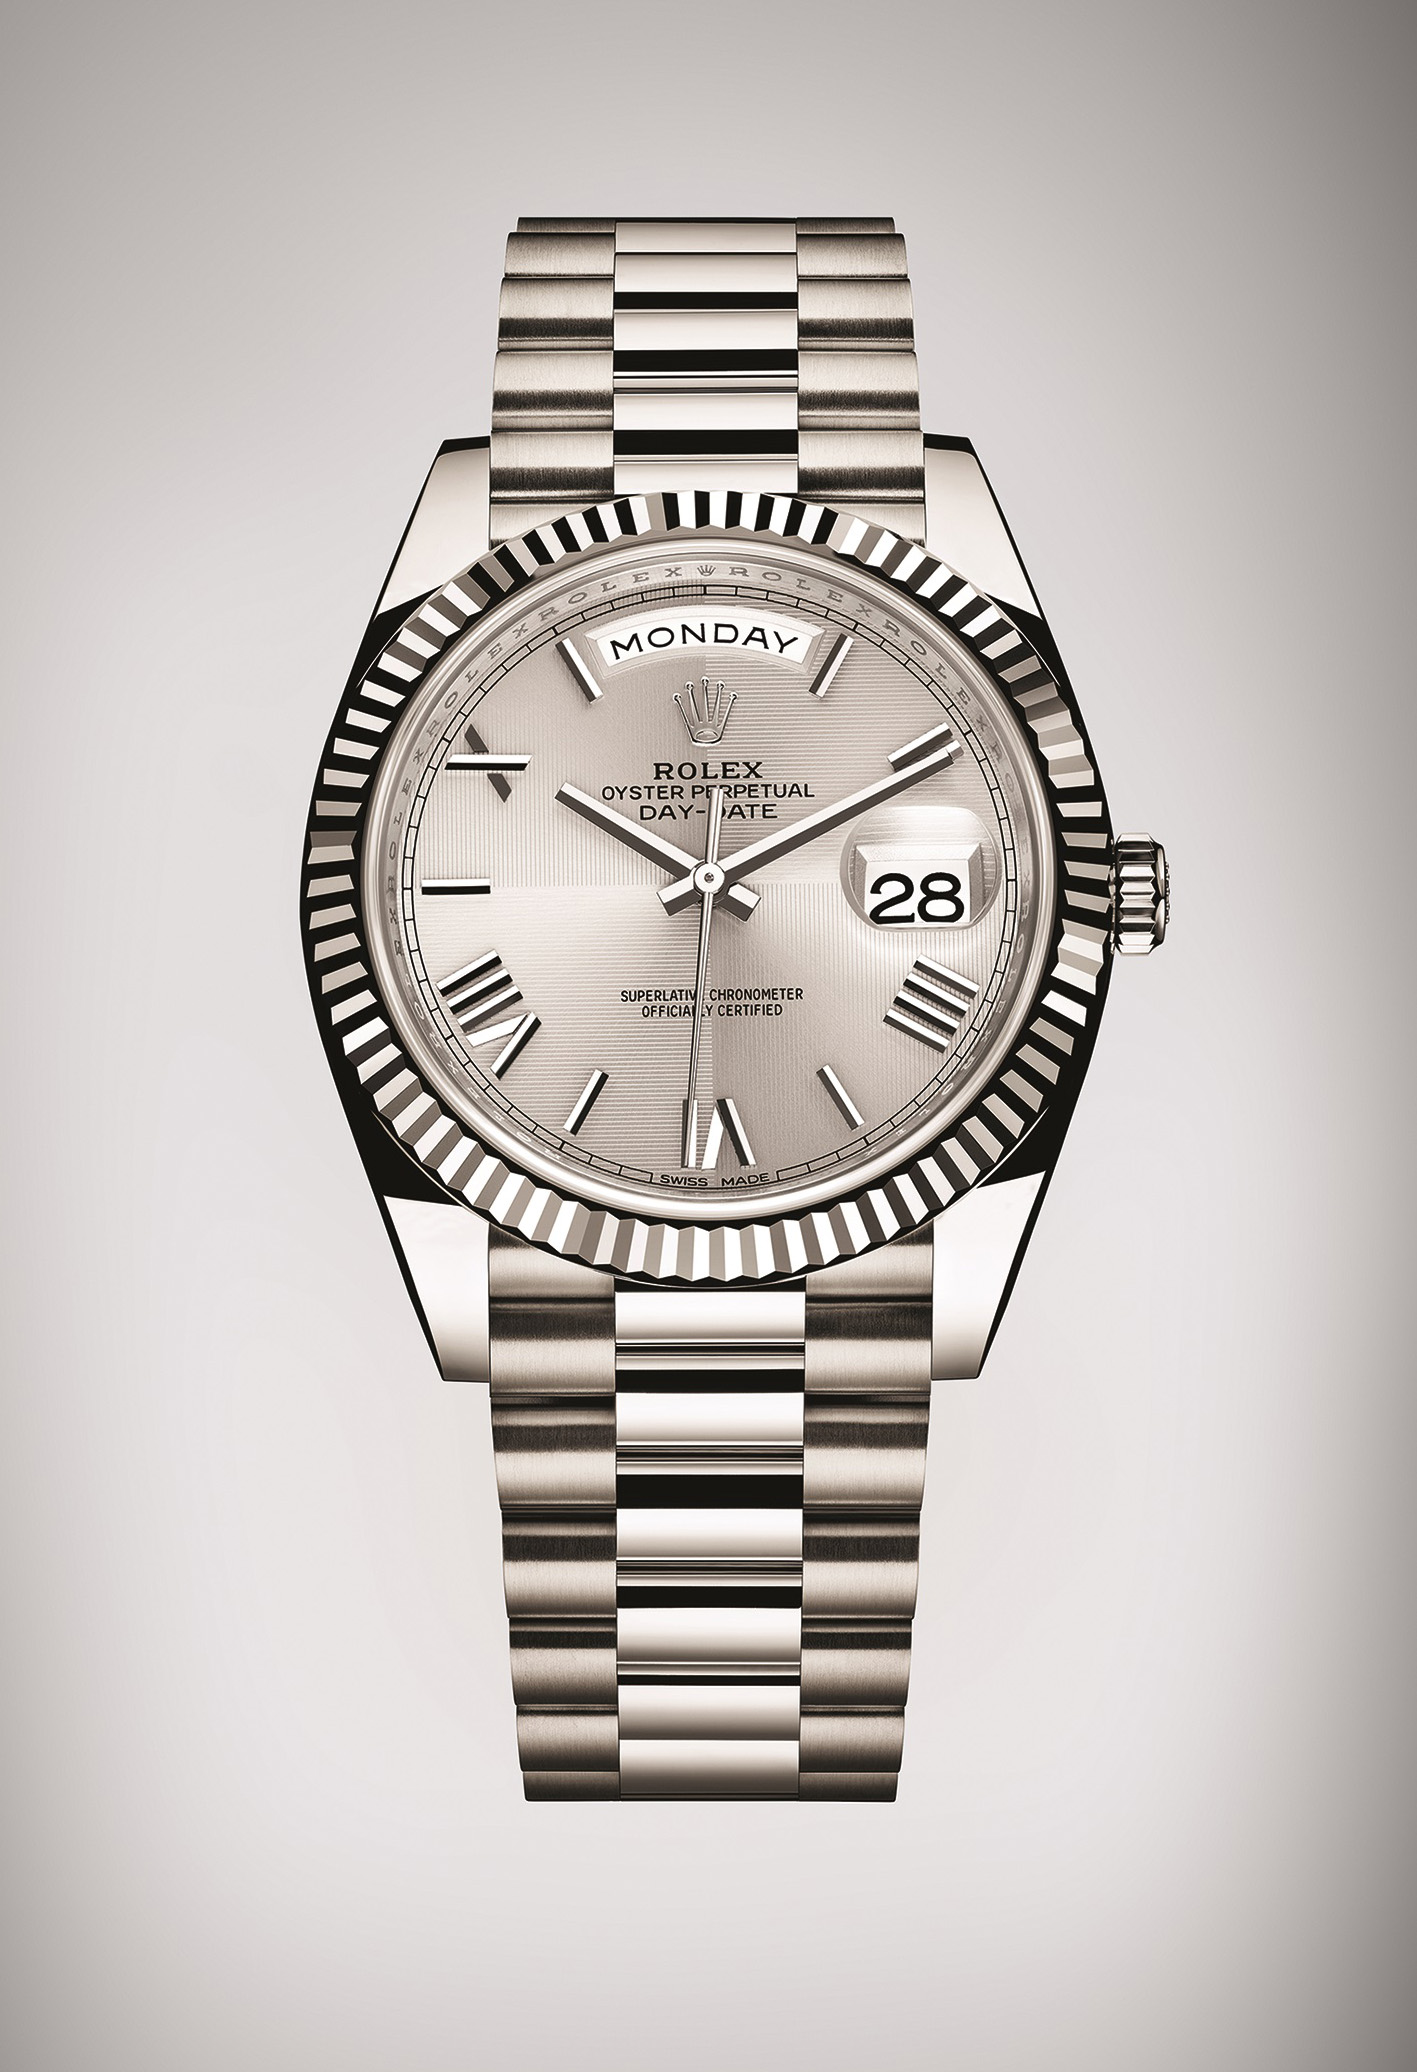 Date perpetual day rolex oyster